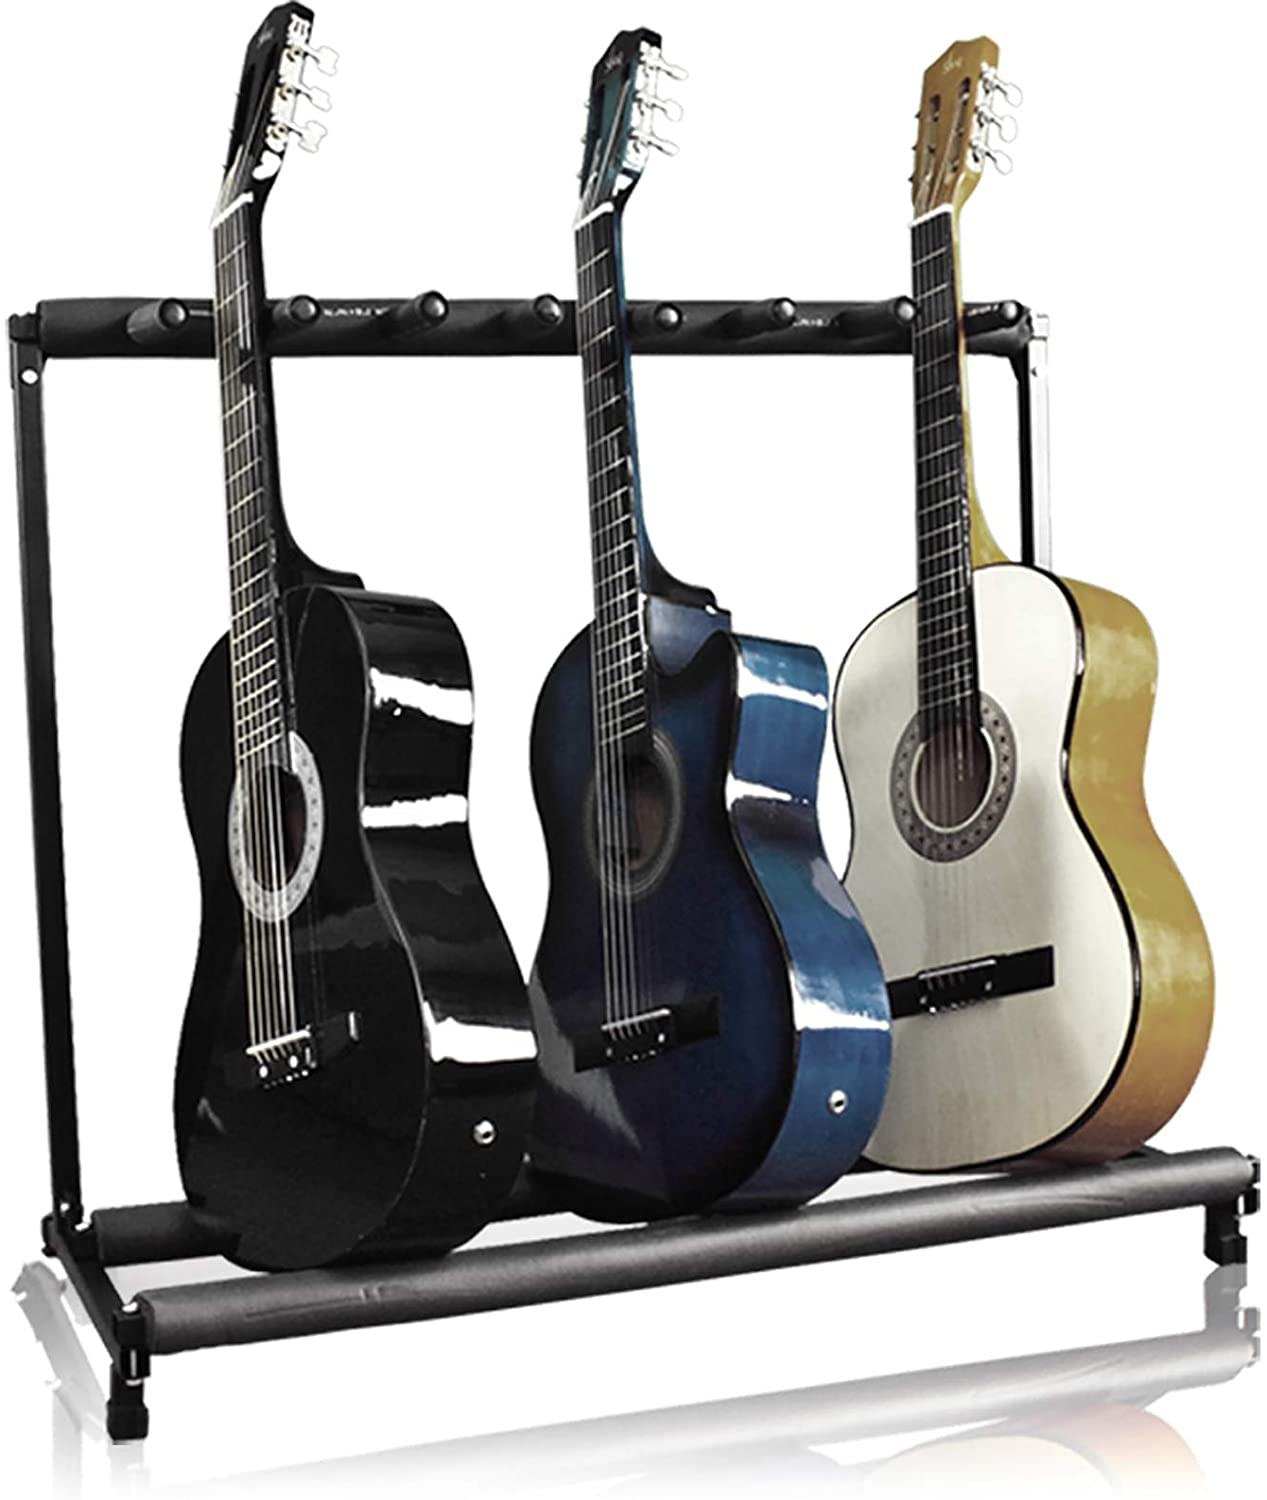 Amazon Com Best Choice Products Multi Guitar Stand 7 Instrument Folding Storage Display Rack Black Musical Instruments